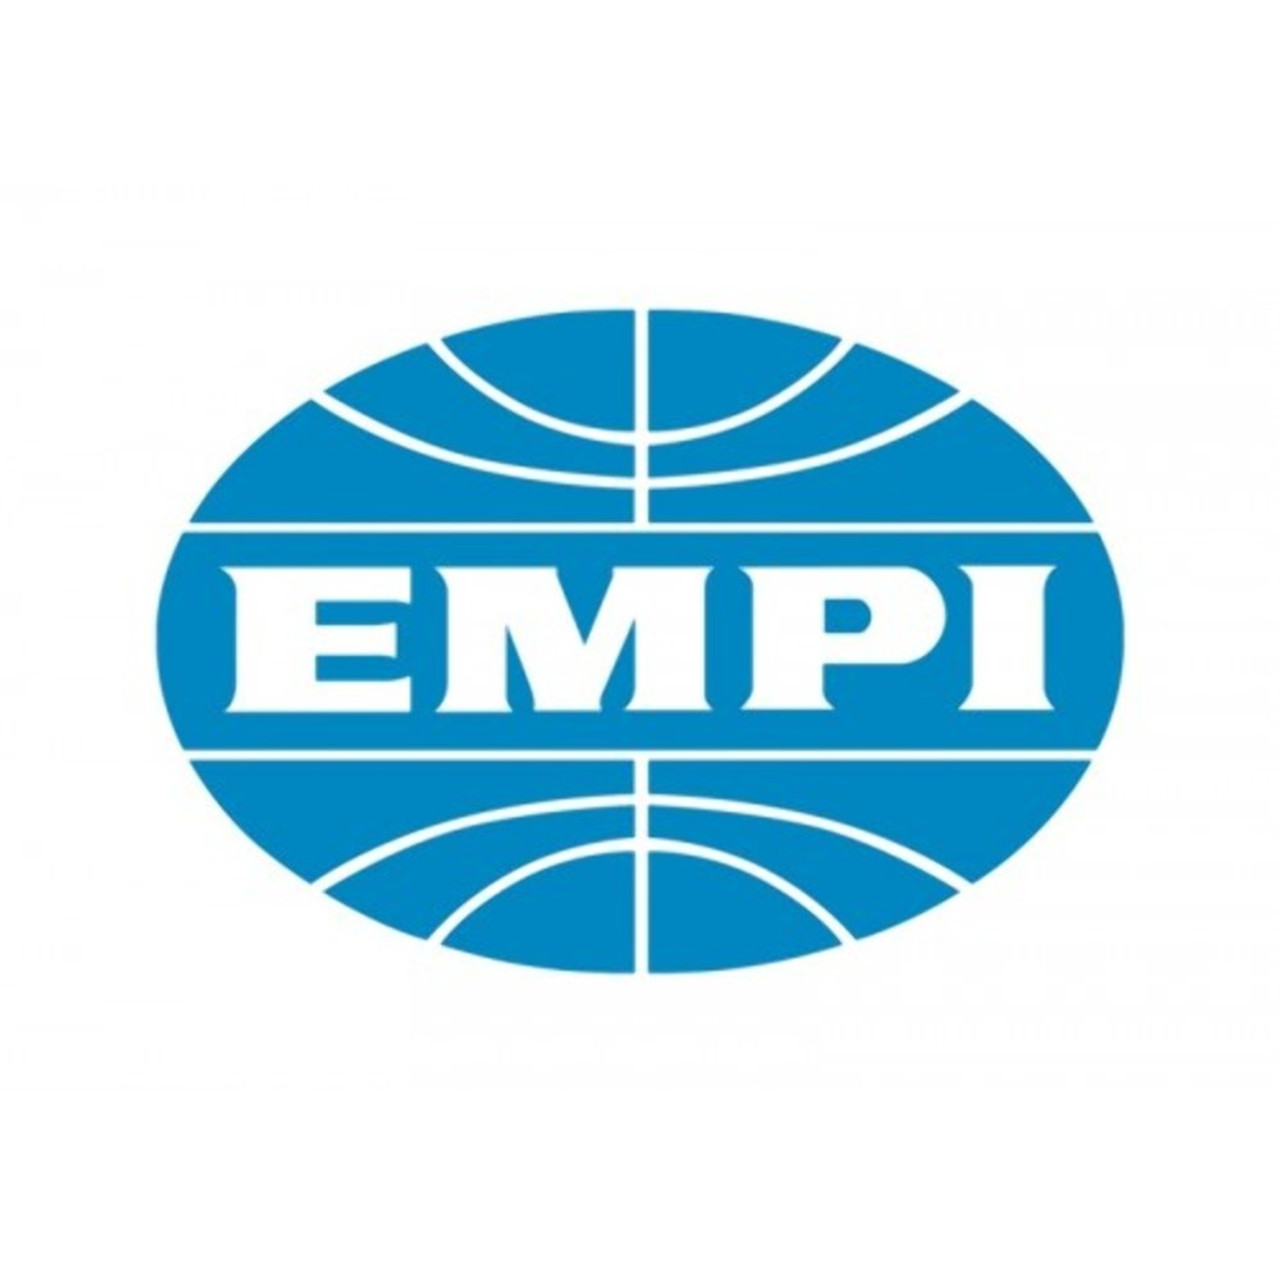 00-9810-0 DECAL,EMPI OVAL,1.75X1.5(100